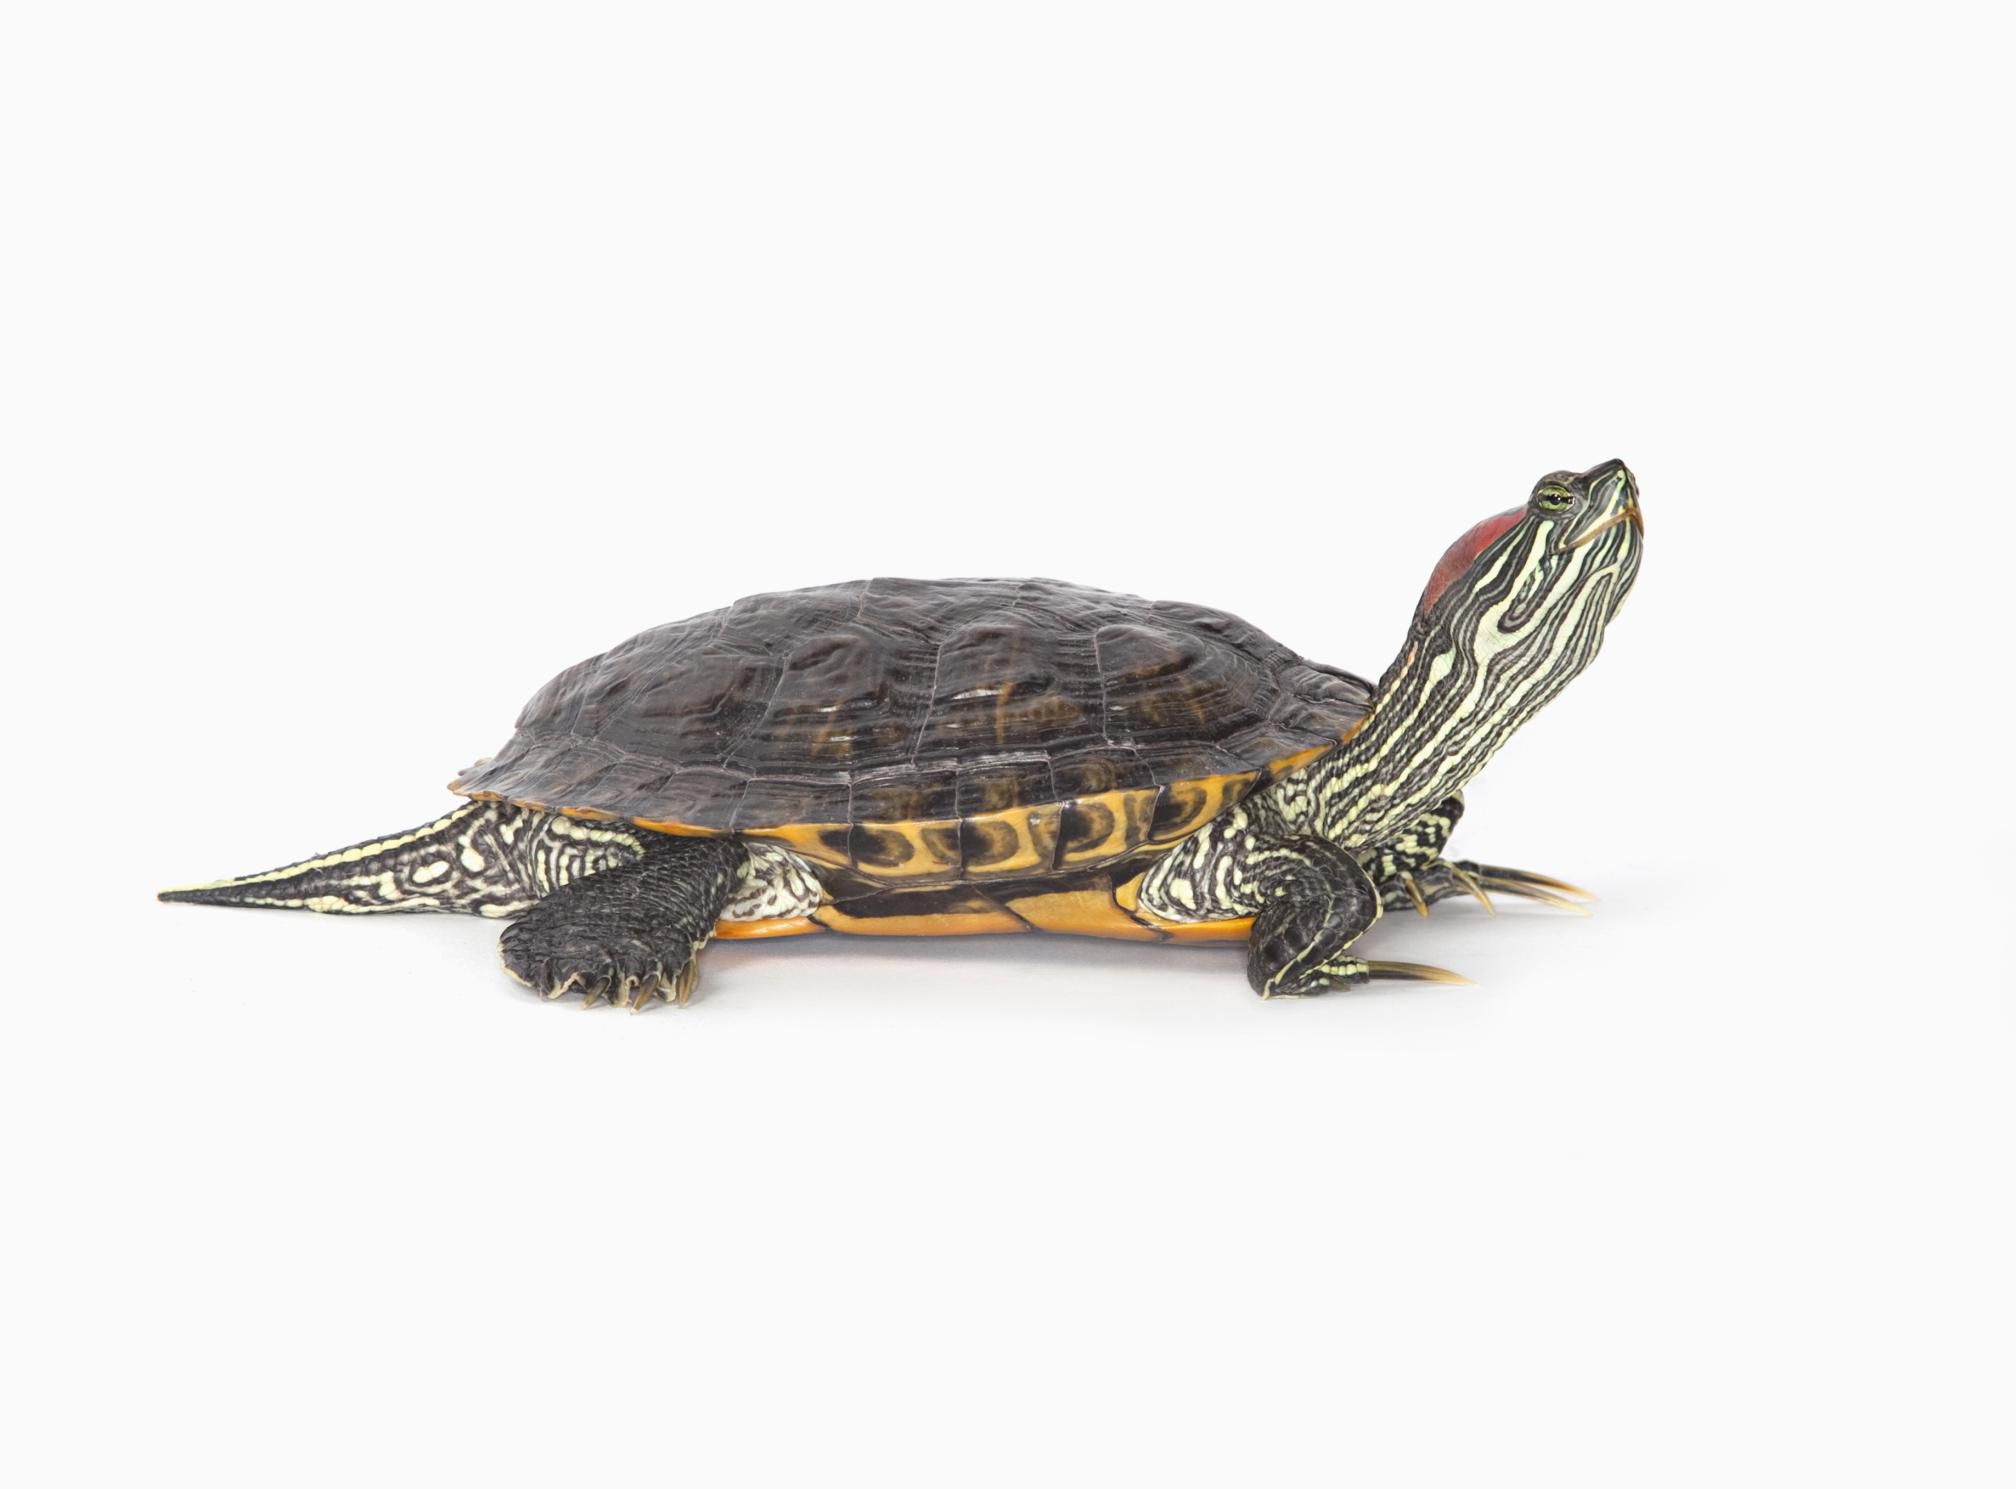 A Guide To Caring For Red Eared Slider Turtles As Pets